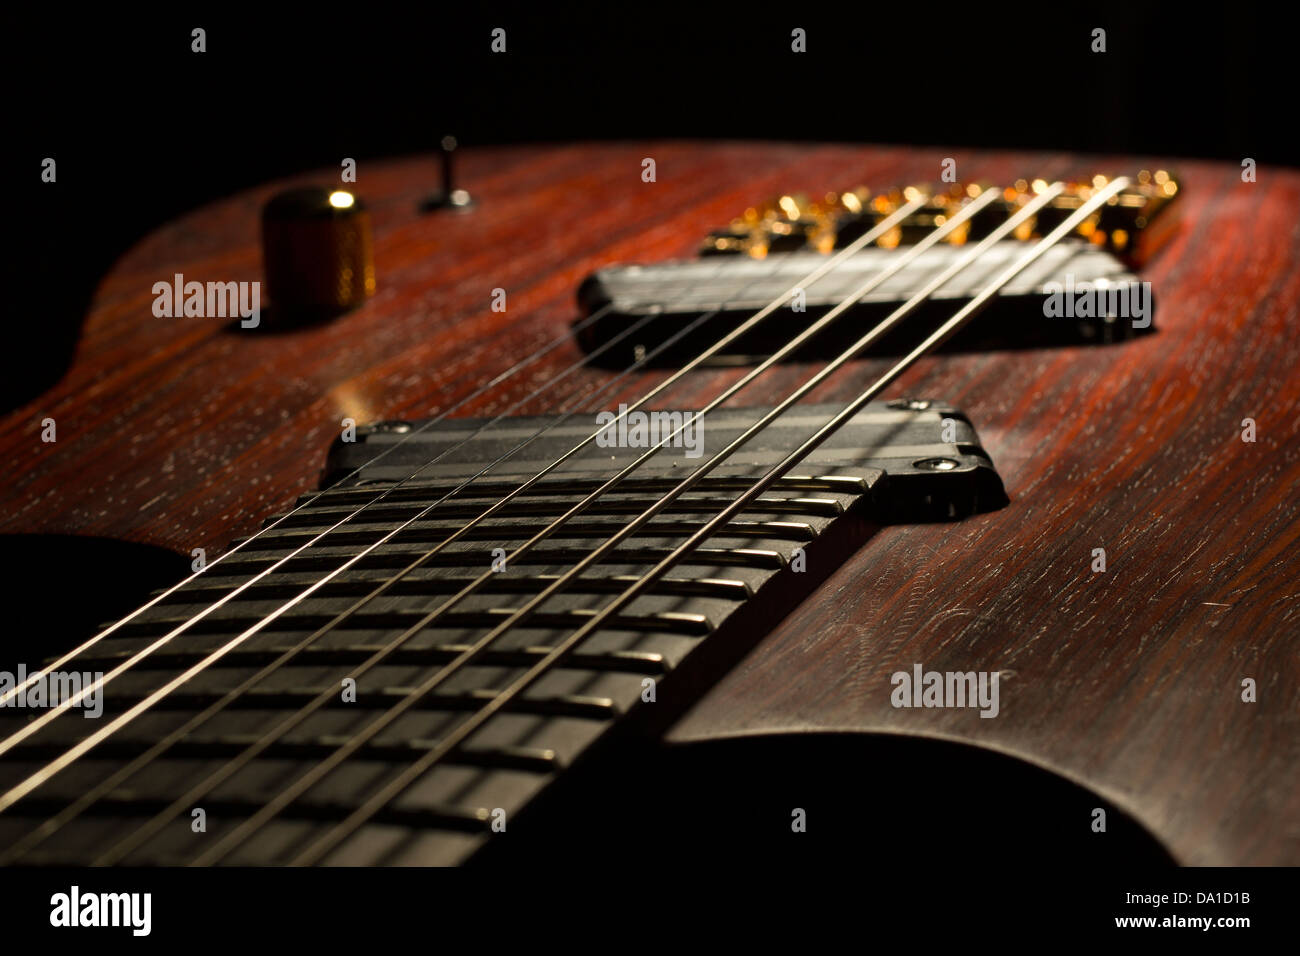 neck of custom guitar,guitars, musicians, musical, musics, playing, studio, jazz, blues, singing, recording, black, - Stock Image